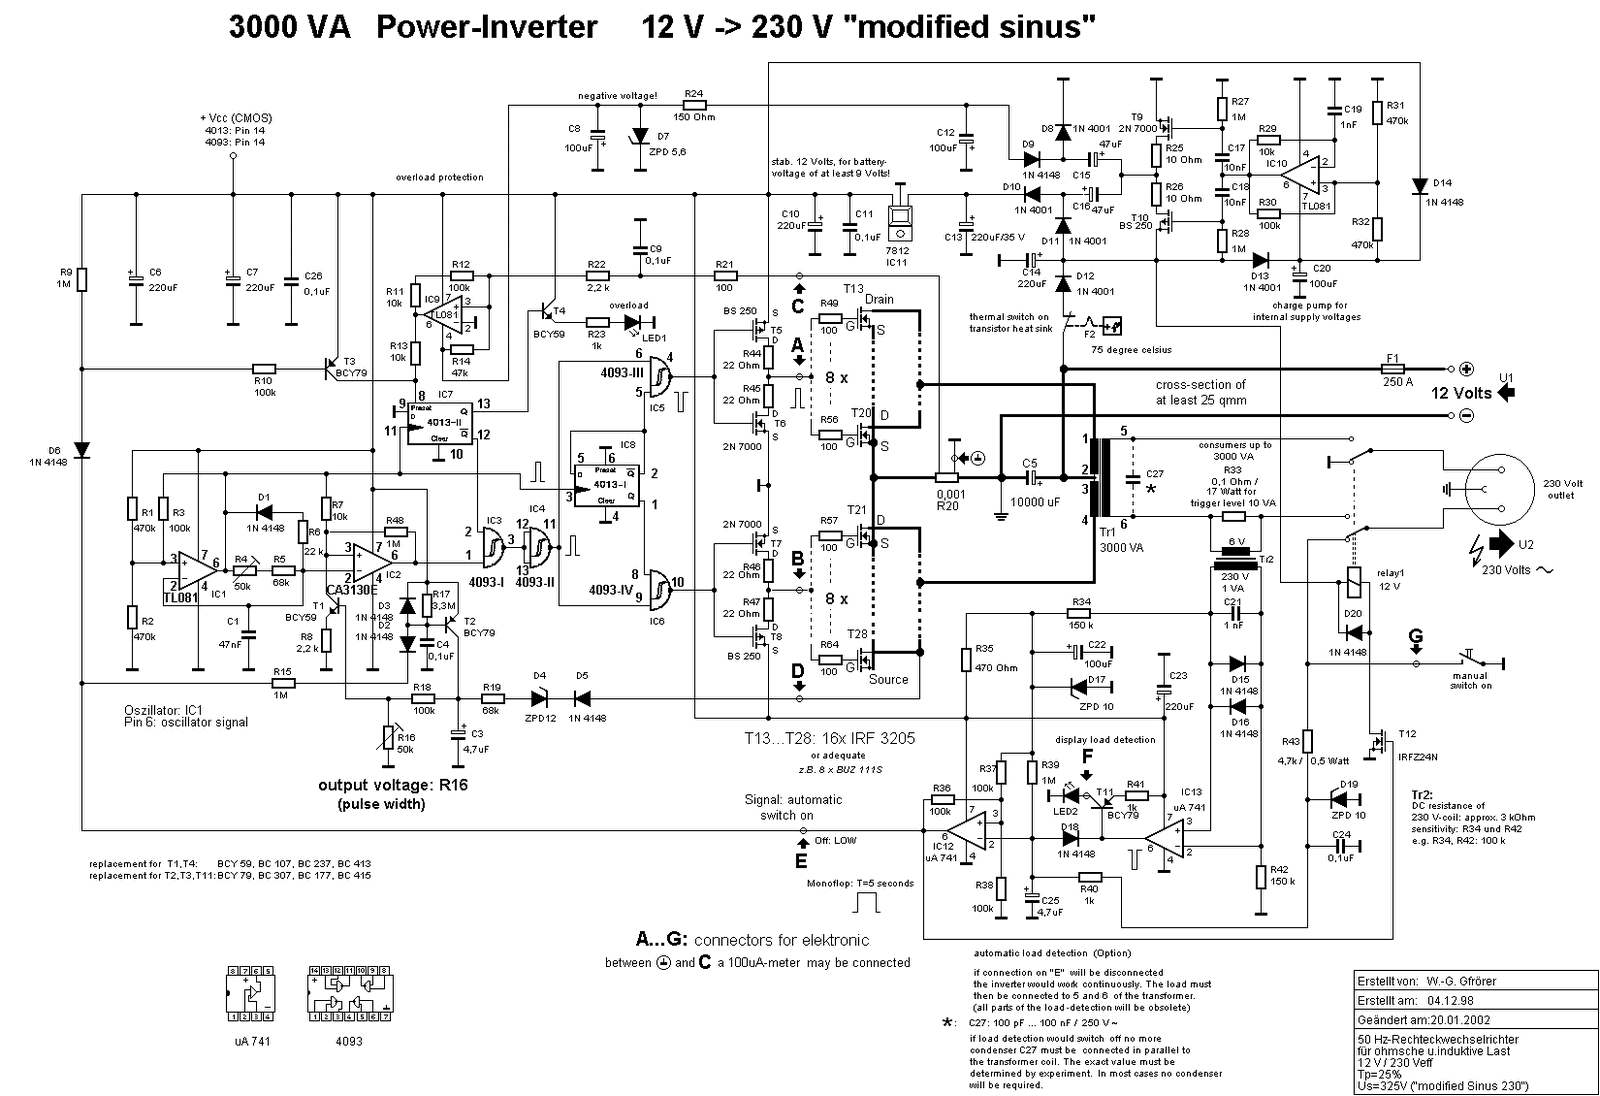 UPS Schematic Circuit Diagram DC to AC on block diagram, network analysis, digital electronics, circuit symbols, function block diagram, circuit design, one-line diagram, circuit formulas, circuit artwork, circuit blueprints, integrated circuit layout, circuit diagrams, wiring diagram,